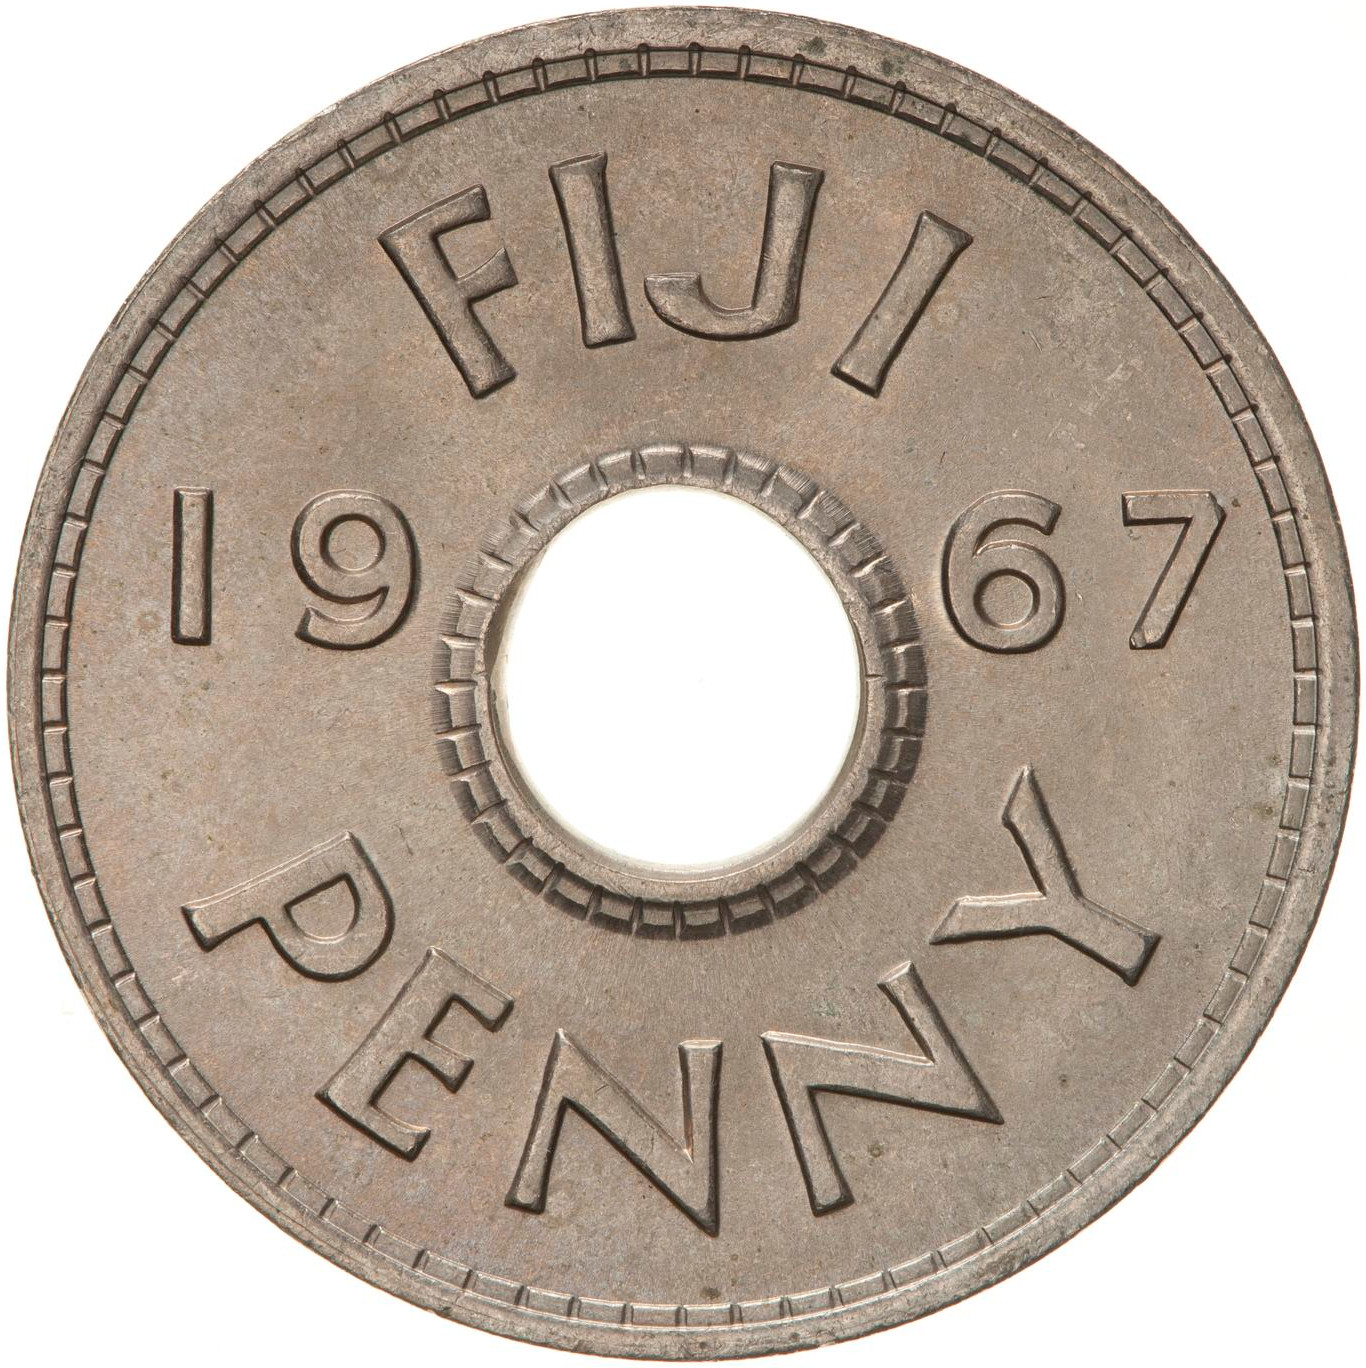 Penny 1967: Photo Coin - 1 Penny, Fiji, 1967